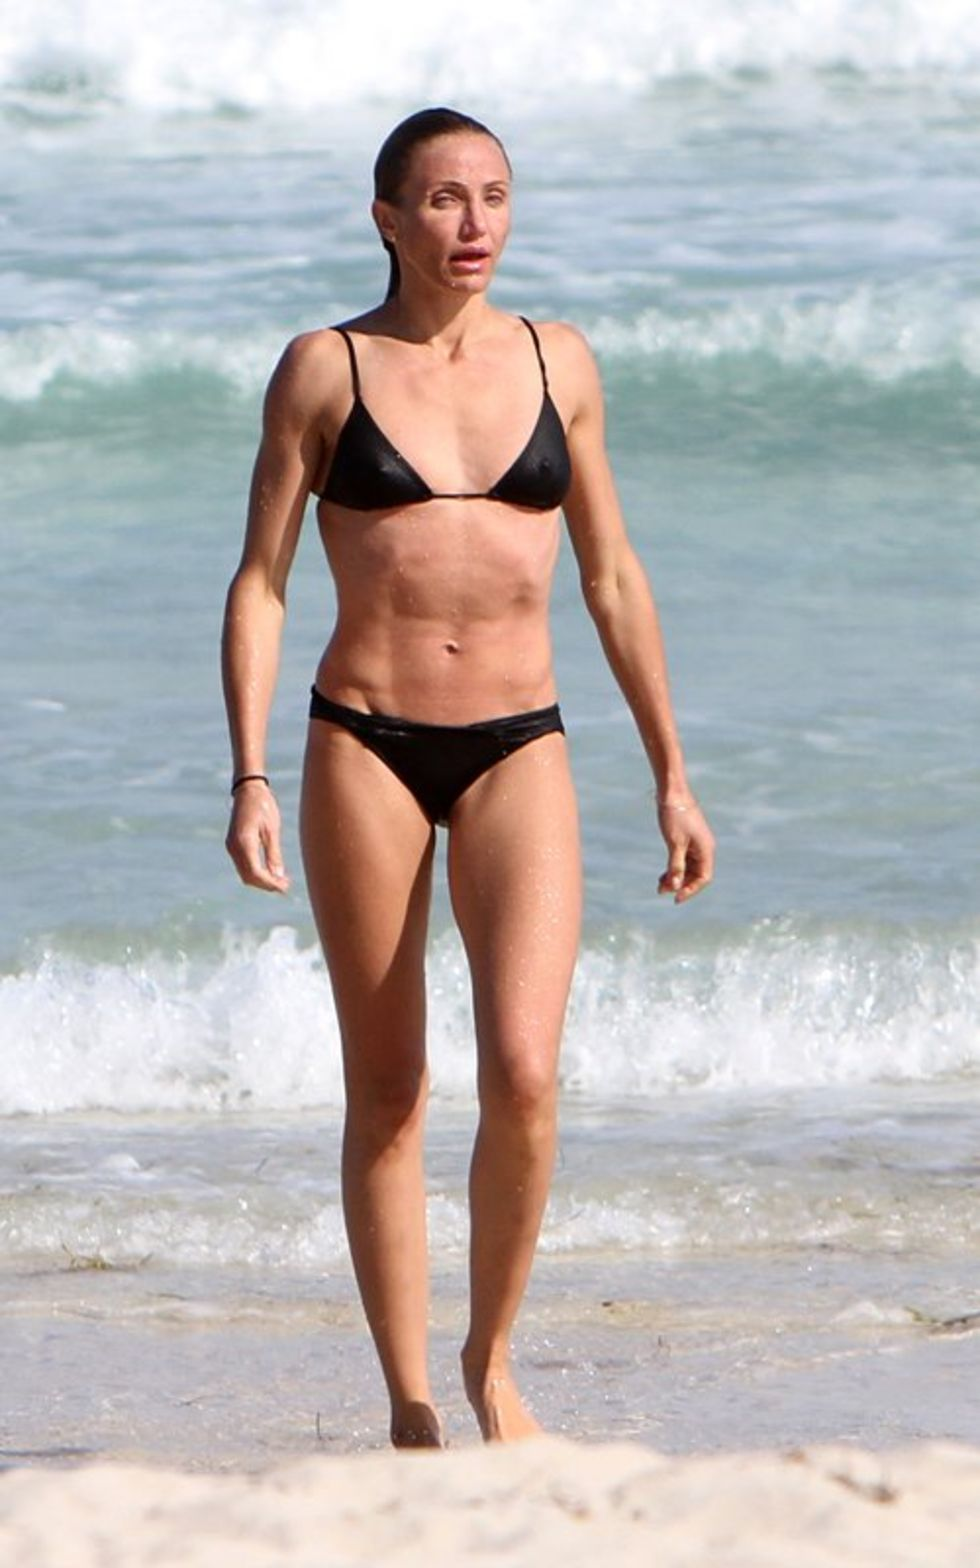 cameron-diaz-and-alex-rodriguez-on-the-beach-in-miami-05